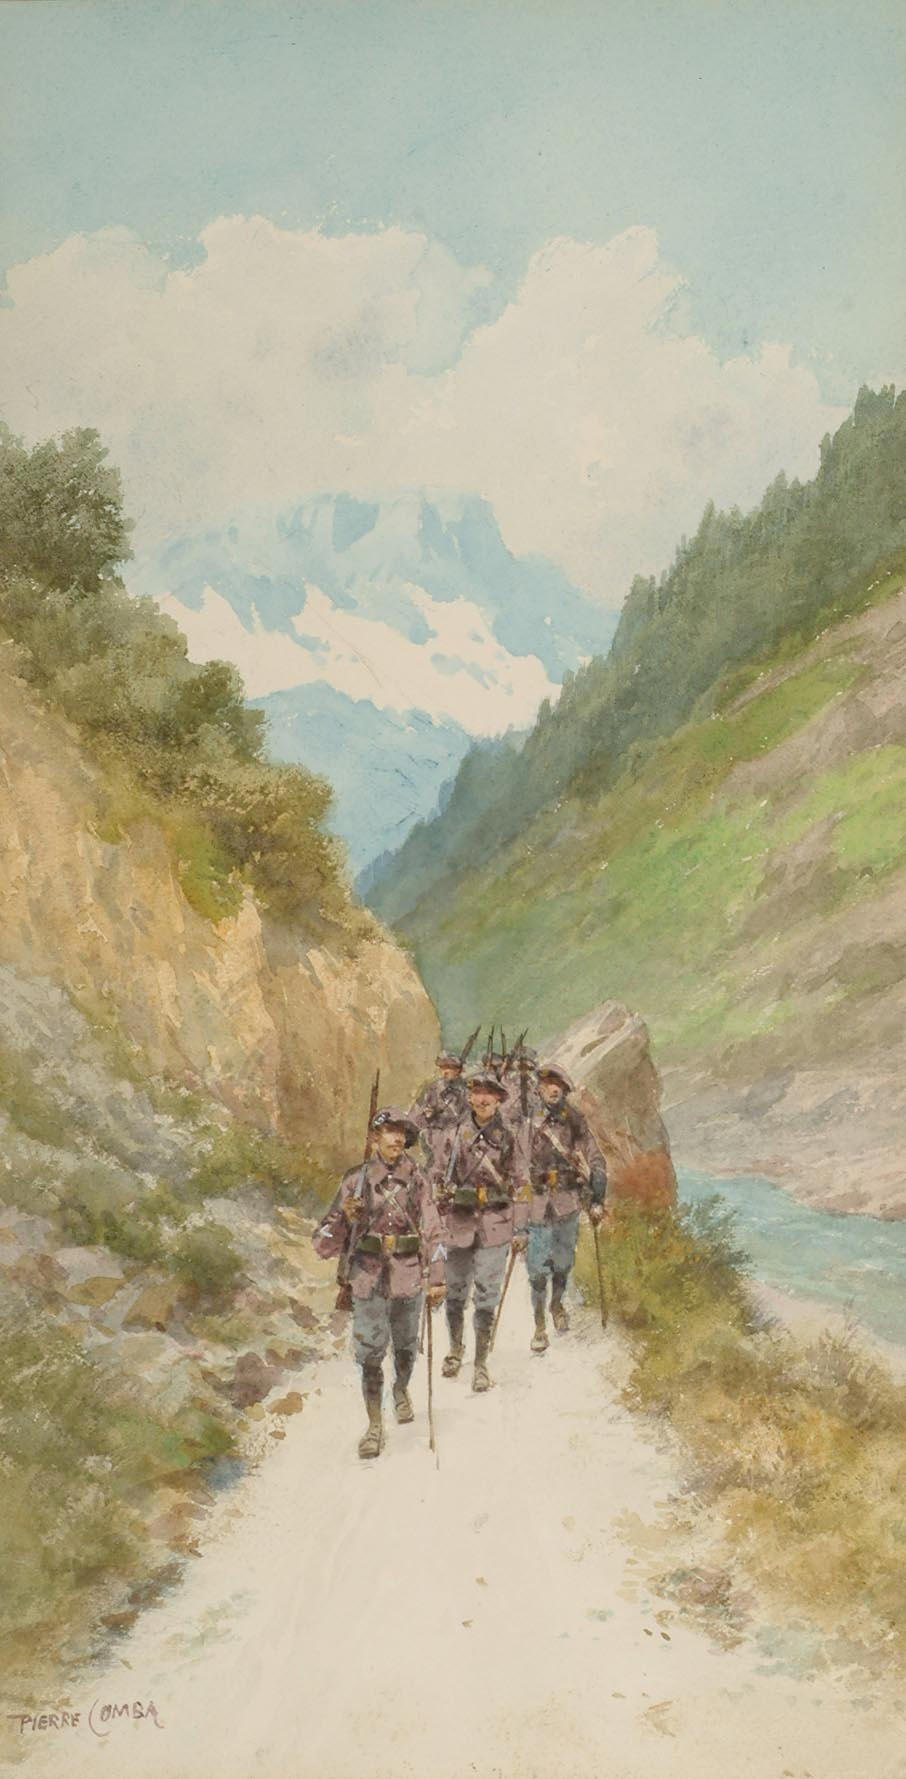 Pierre Comba (French, d.1934) A reconnoitre in the Alps; On patrol, 34 x 18 cm, (2).